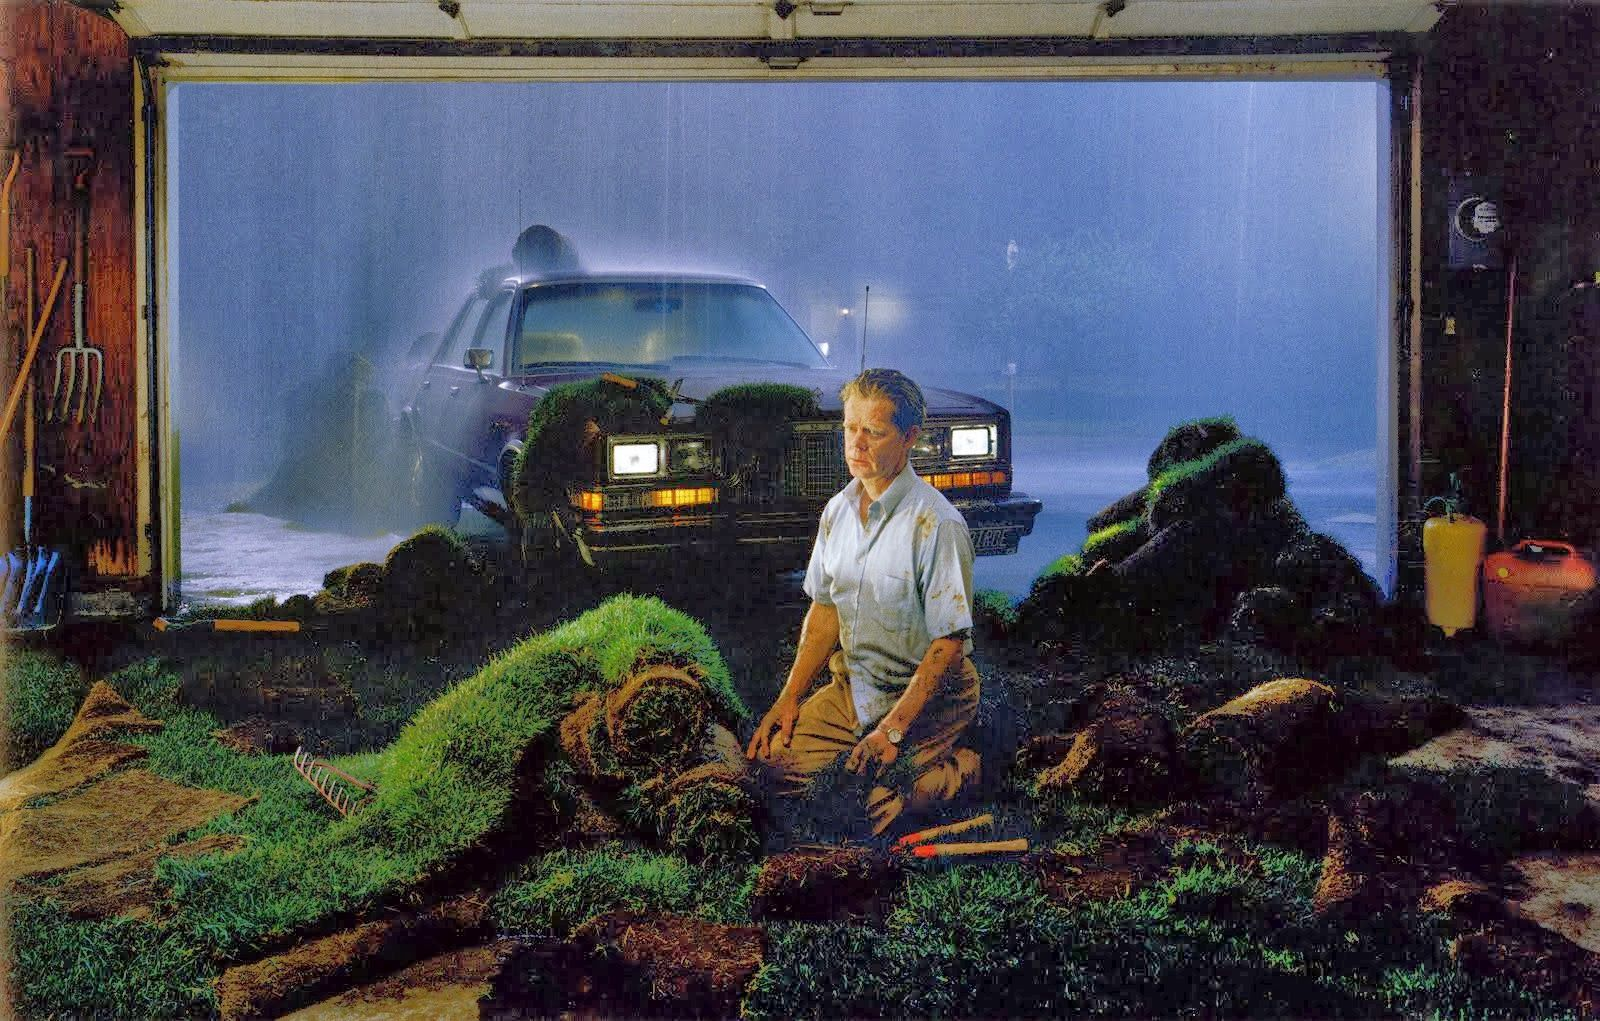 Bloggie: Digital Photo Media: Beneath The Roses By Gregory Crewdson